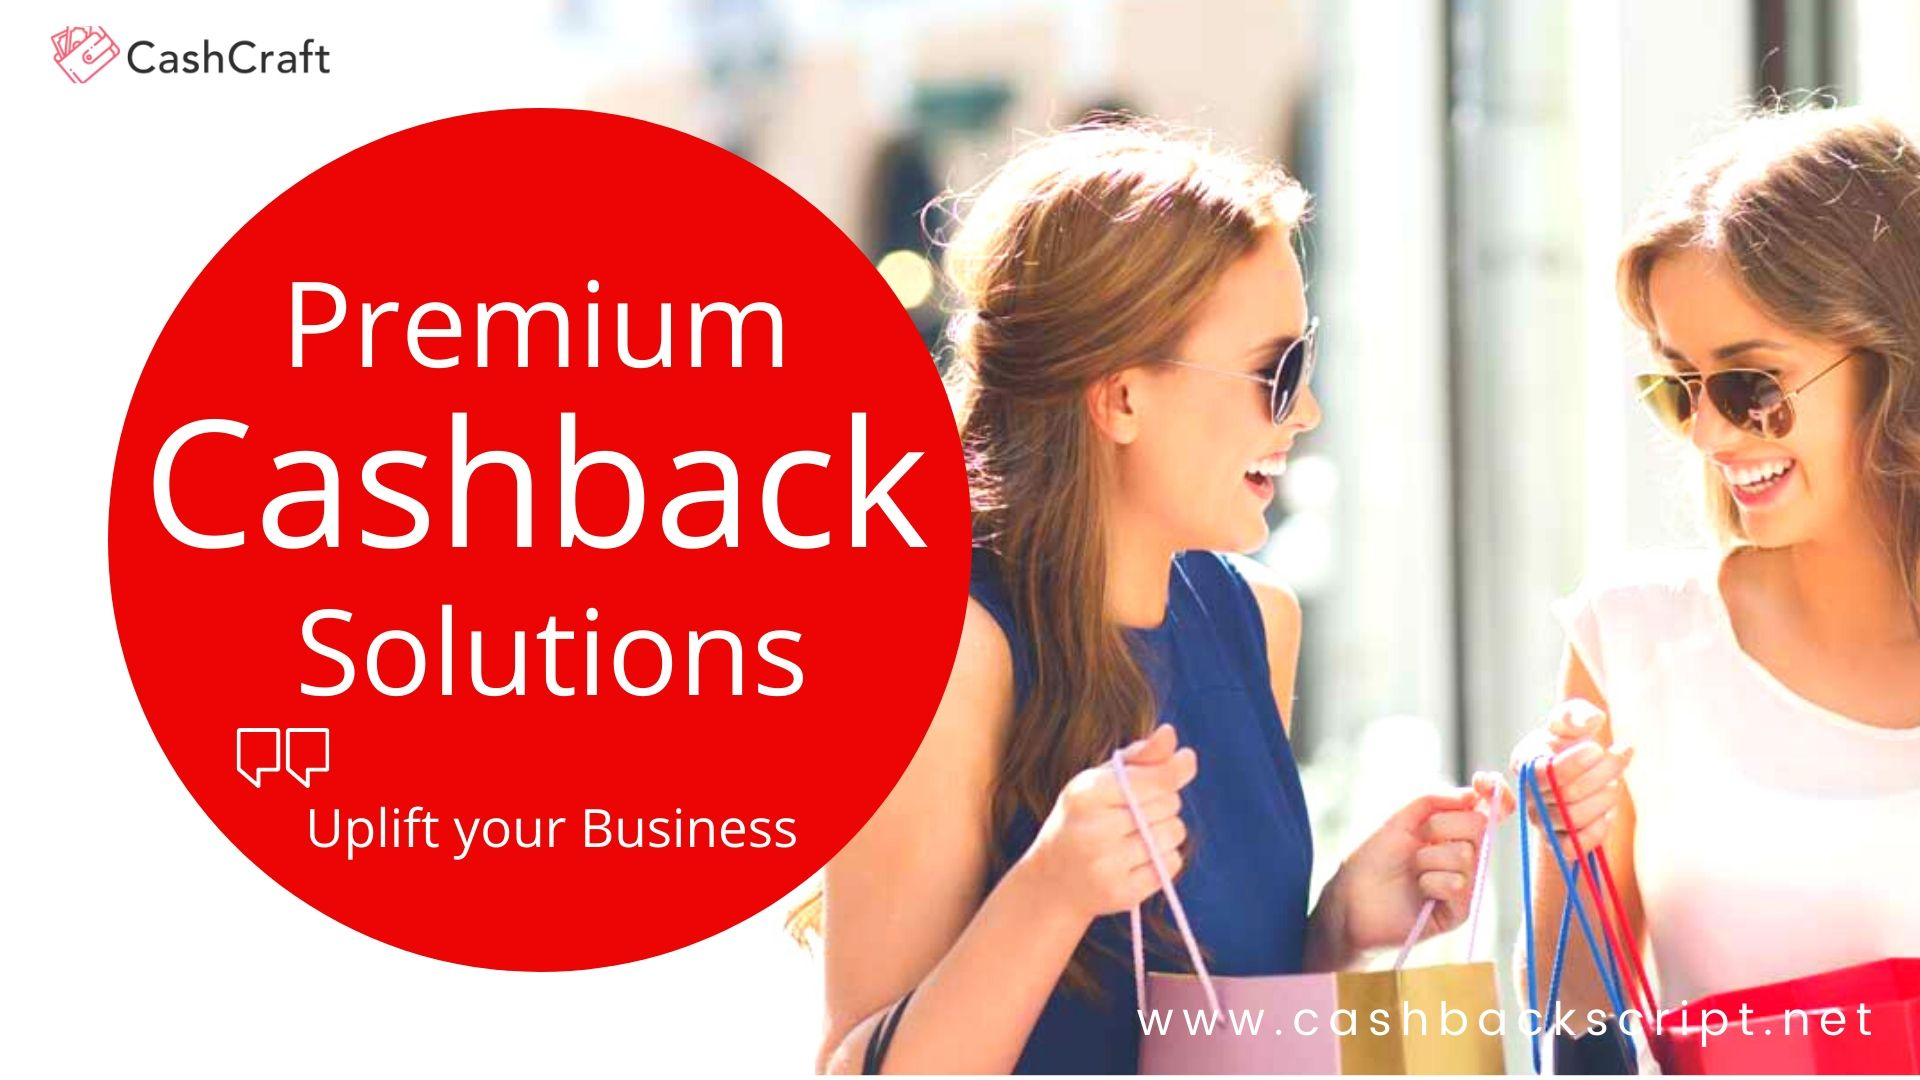 What are the Premium Cashback Solutions that uplift your business?